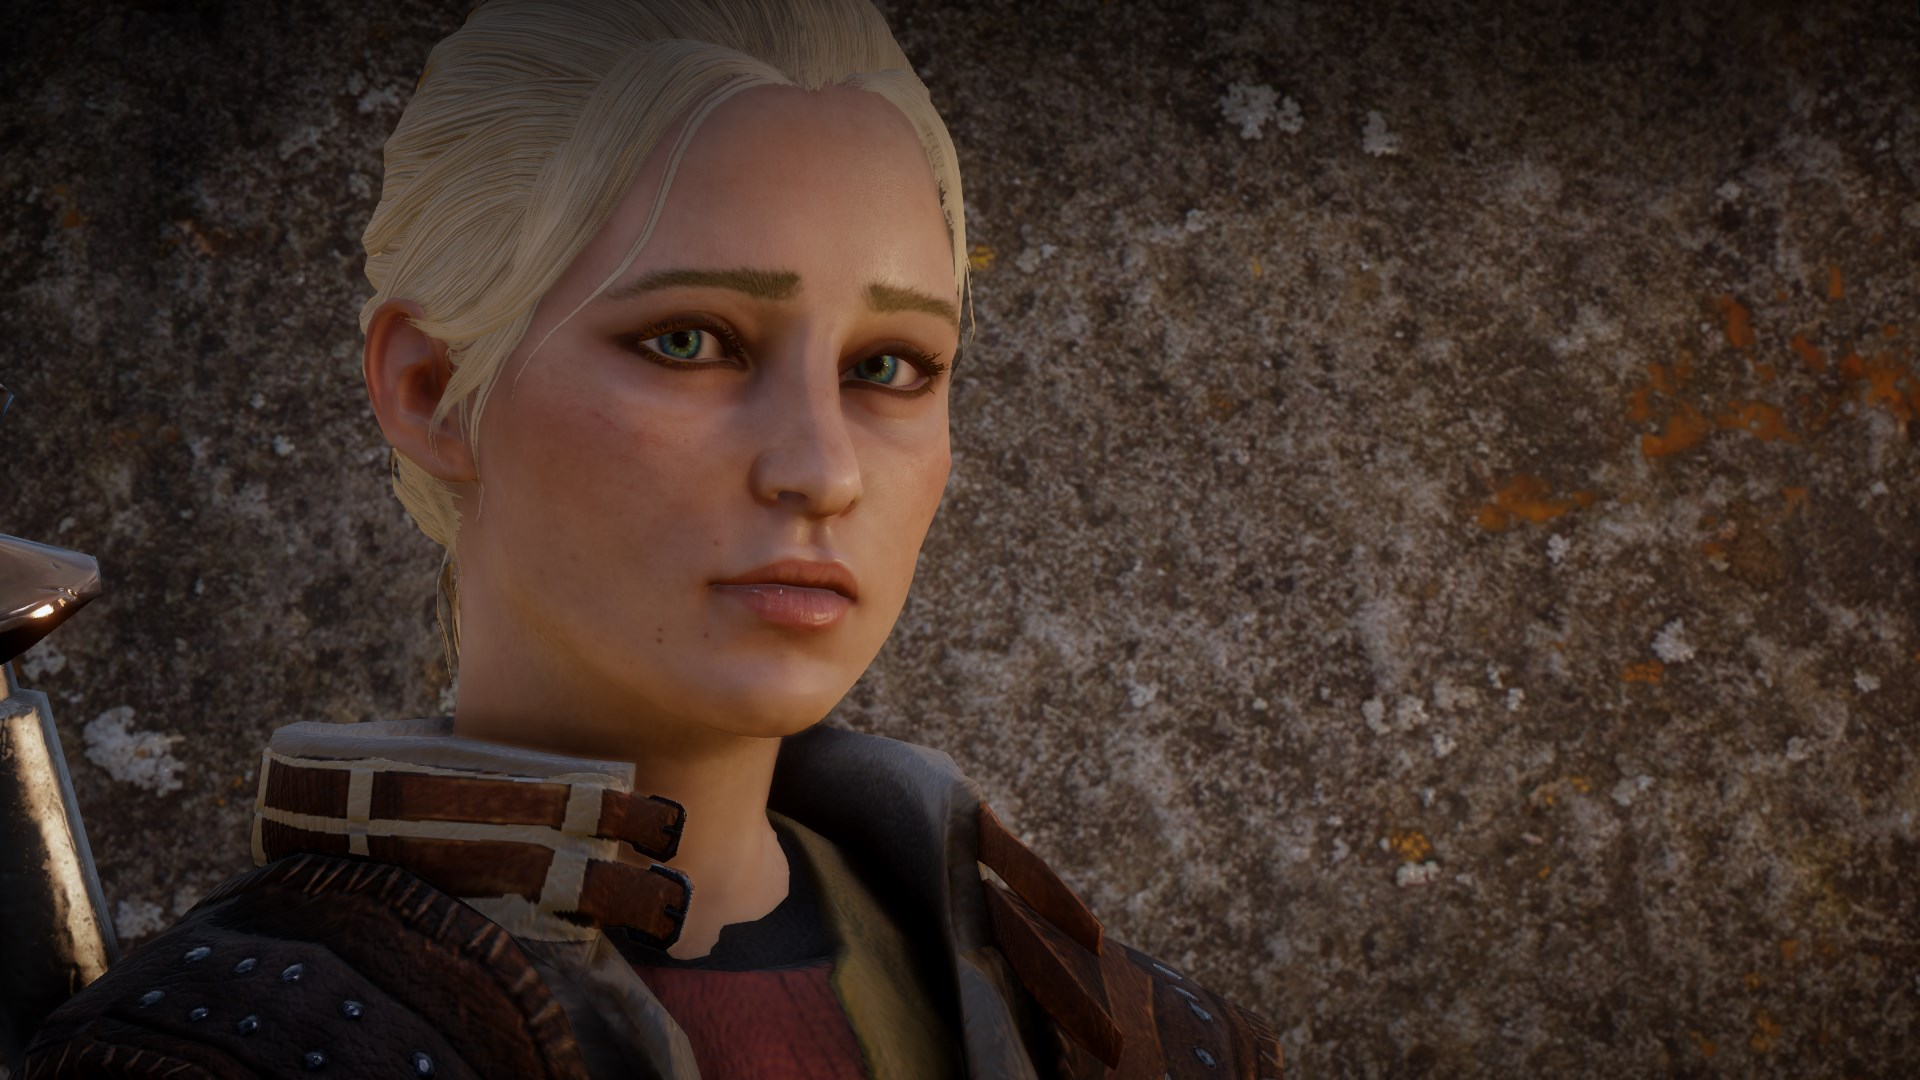 Someone recreated Game of Thrones Daenerys Targaryen in Dragon Age Inquisit